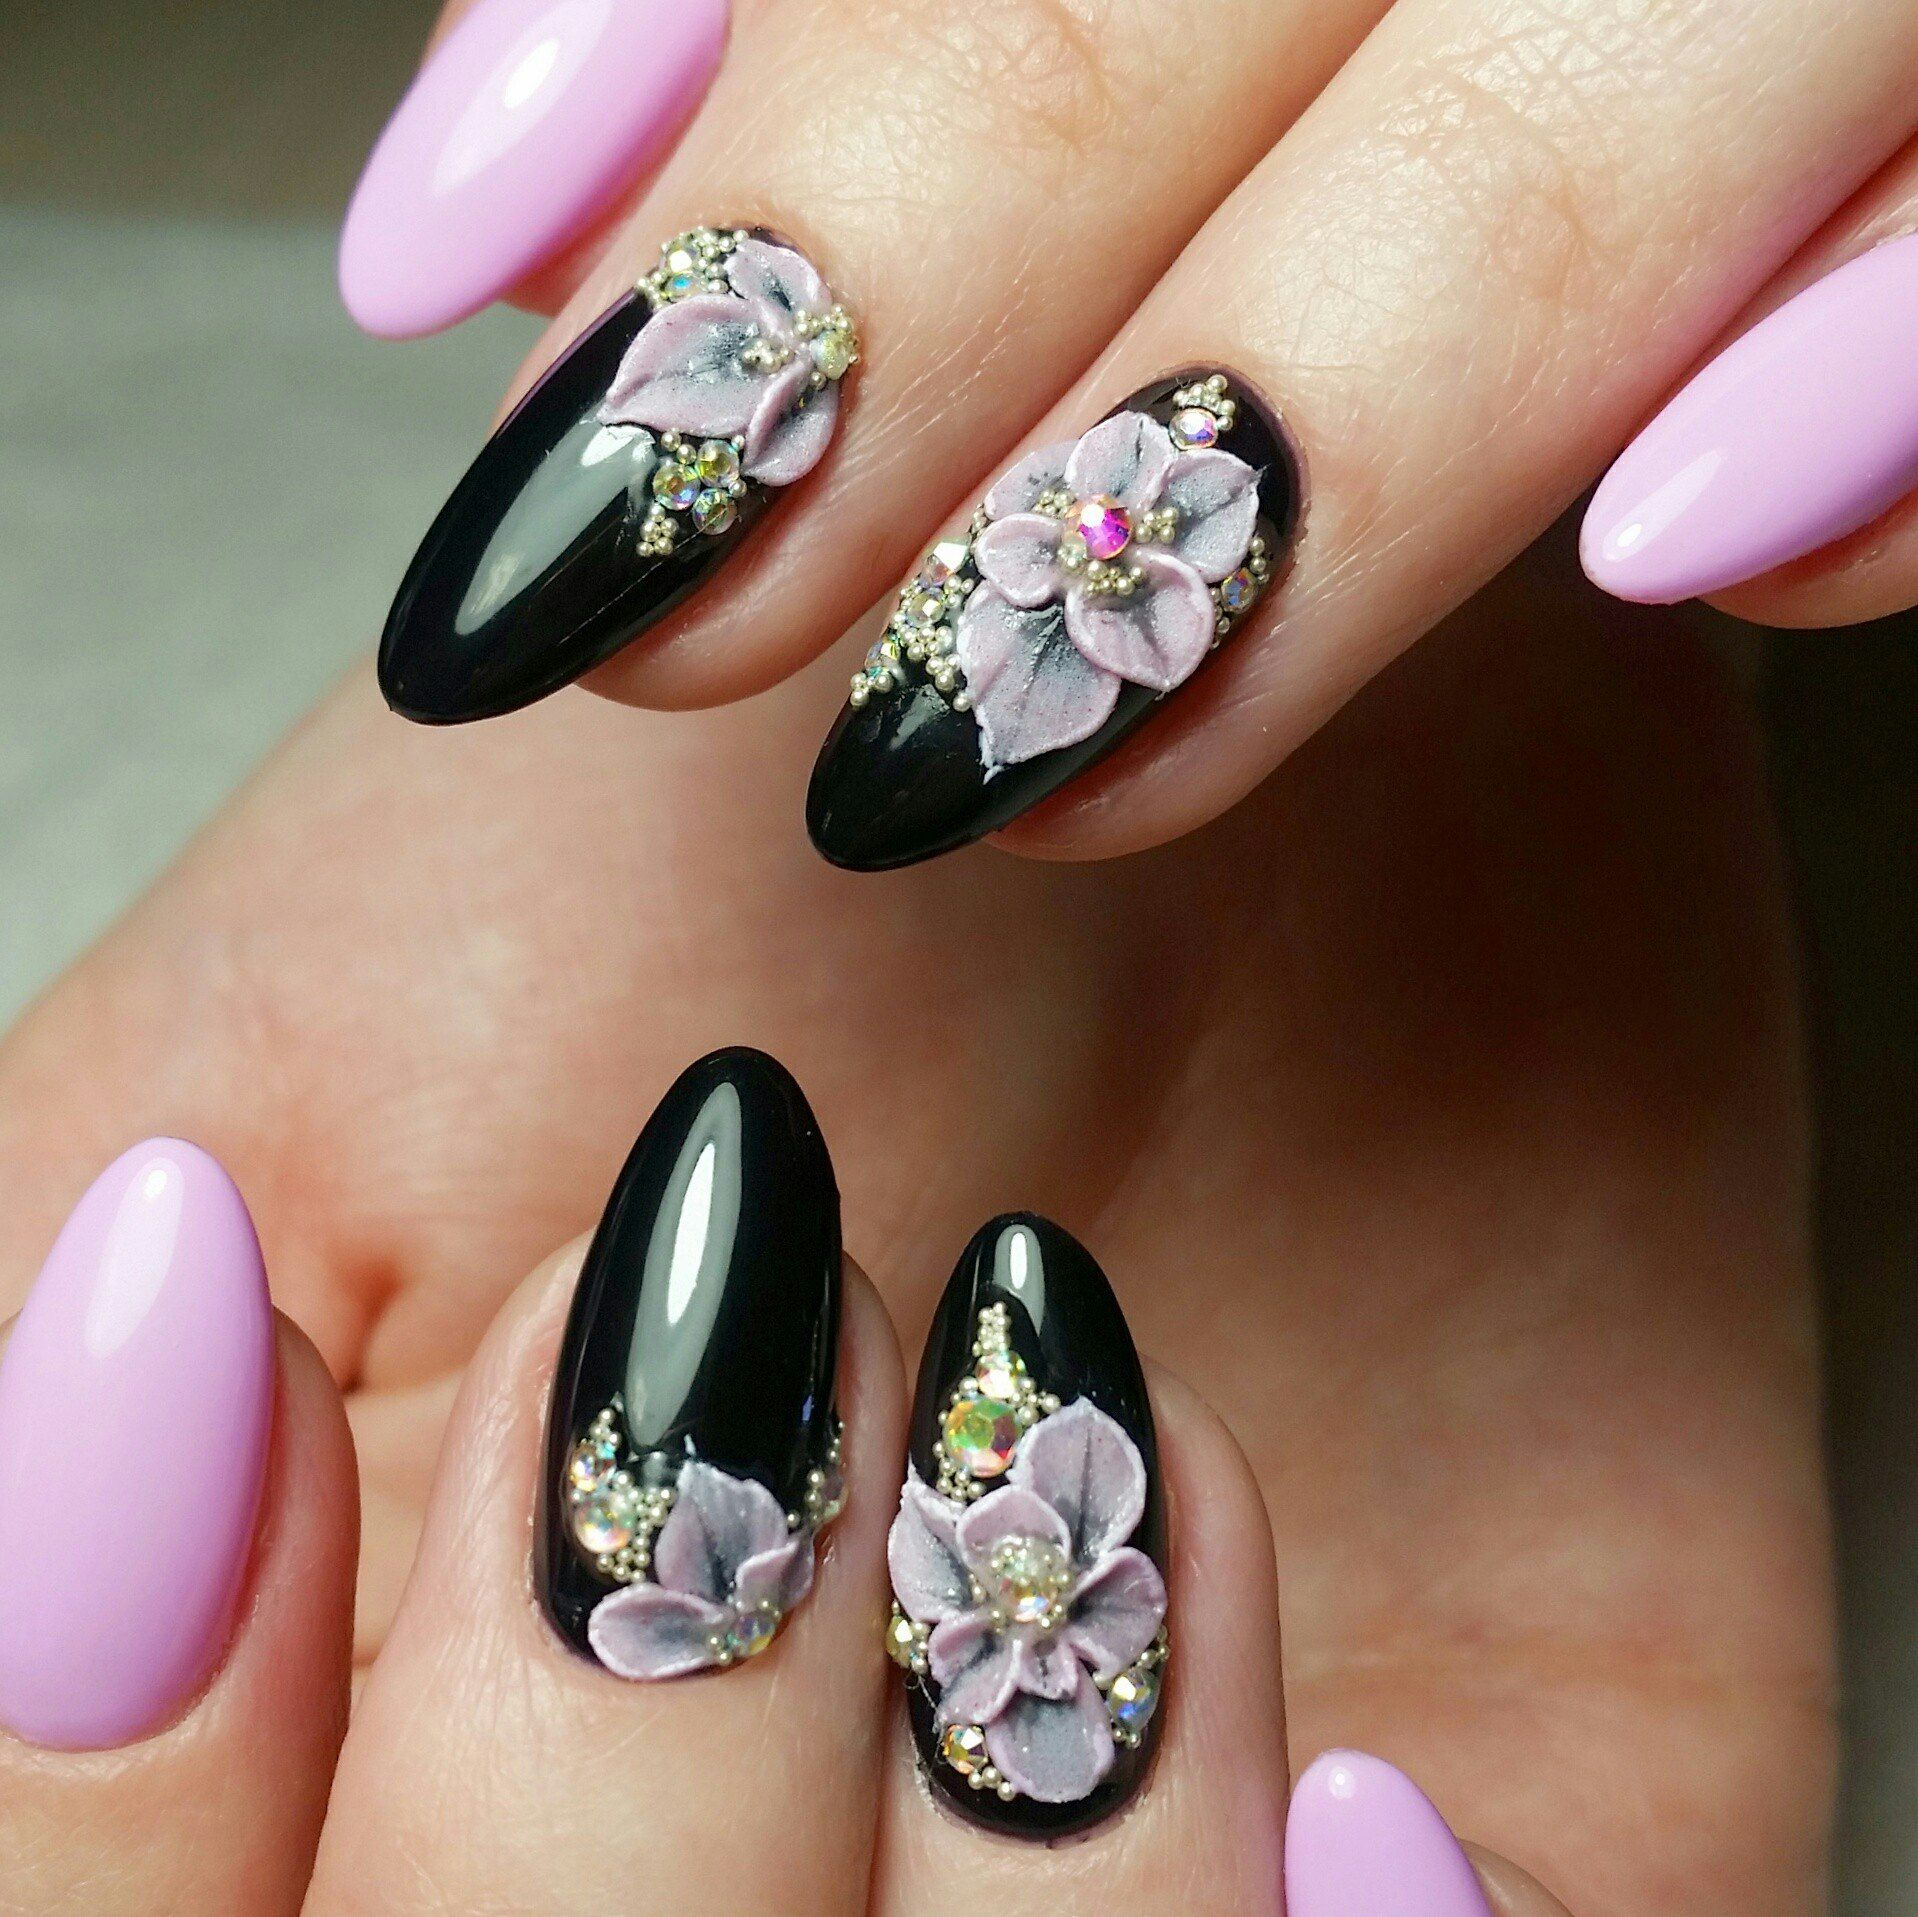 Pin by Наталья on Маникюр | Pinterest | Fall nails 2016, Nails 2016 ...